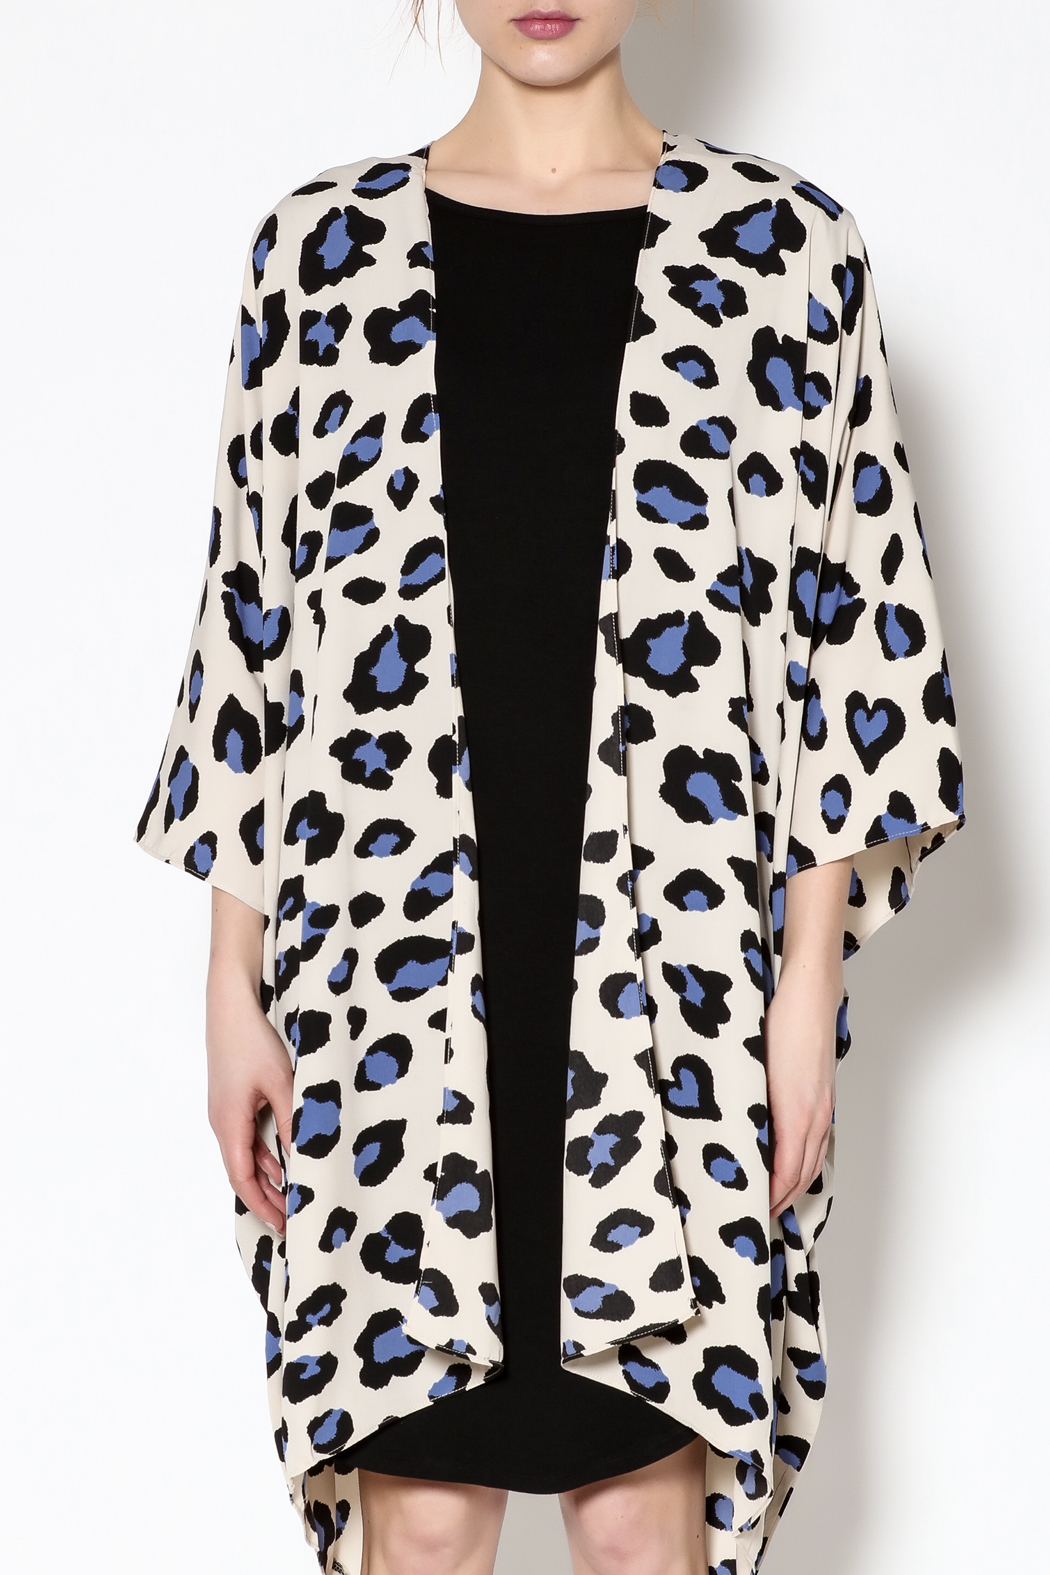 Buddy Love Rowan Leopard Kimono from Mississippi by Suzi Paige ...